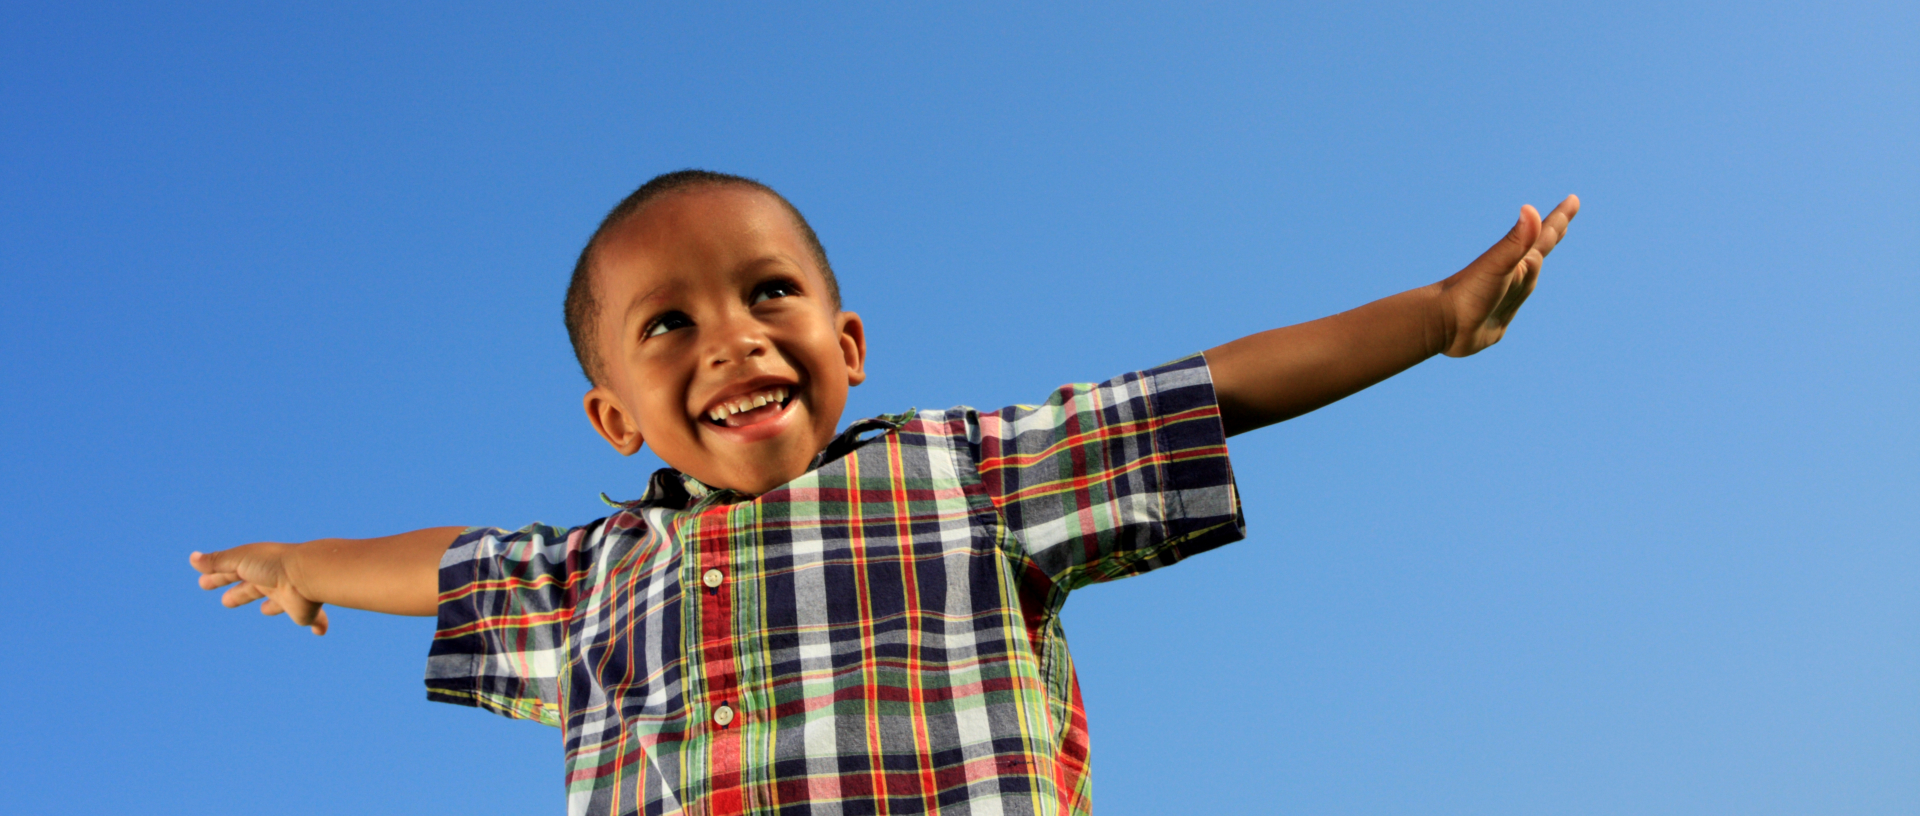 Young child pretending to fly with blue sky background.